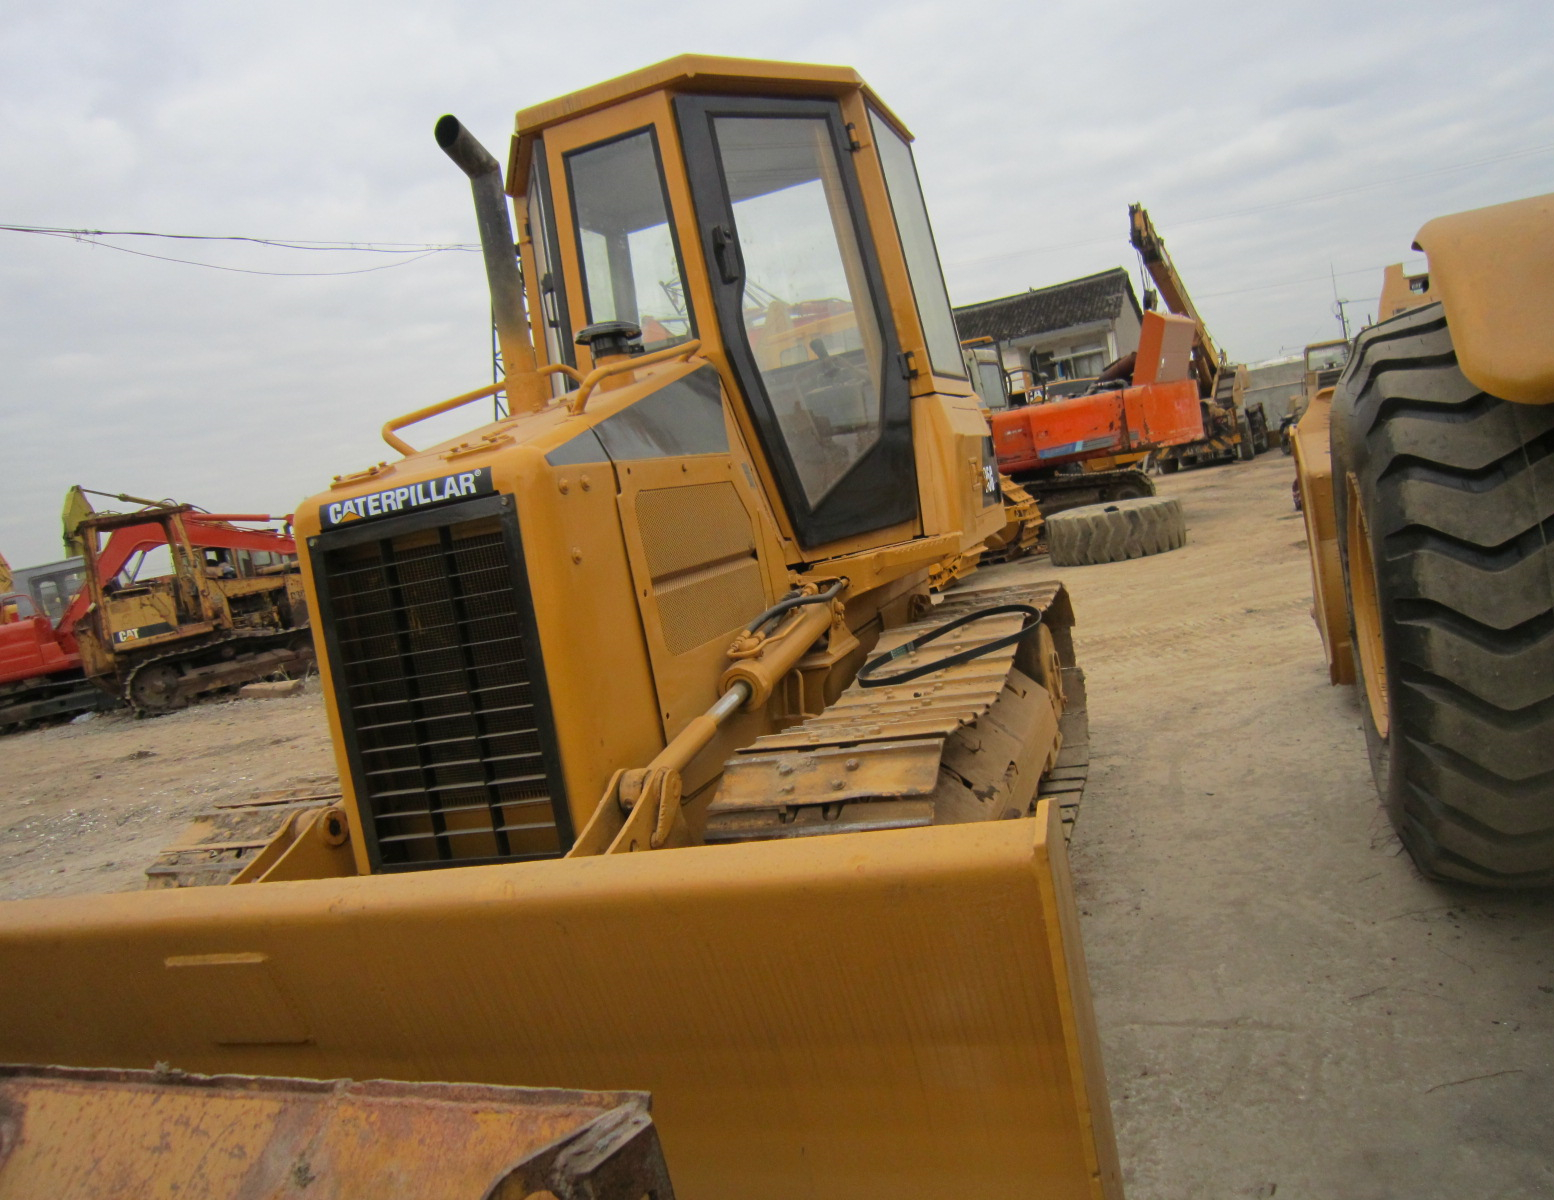 Used CATERPILLAR D5G Bulldozer on Sale